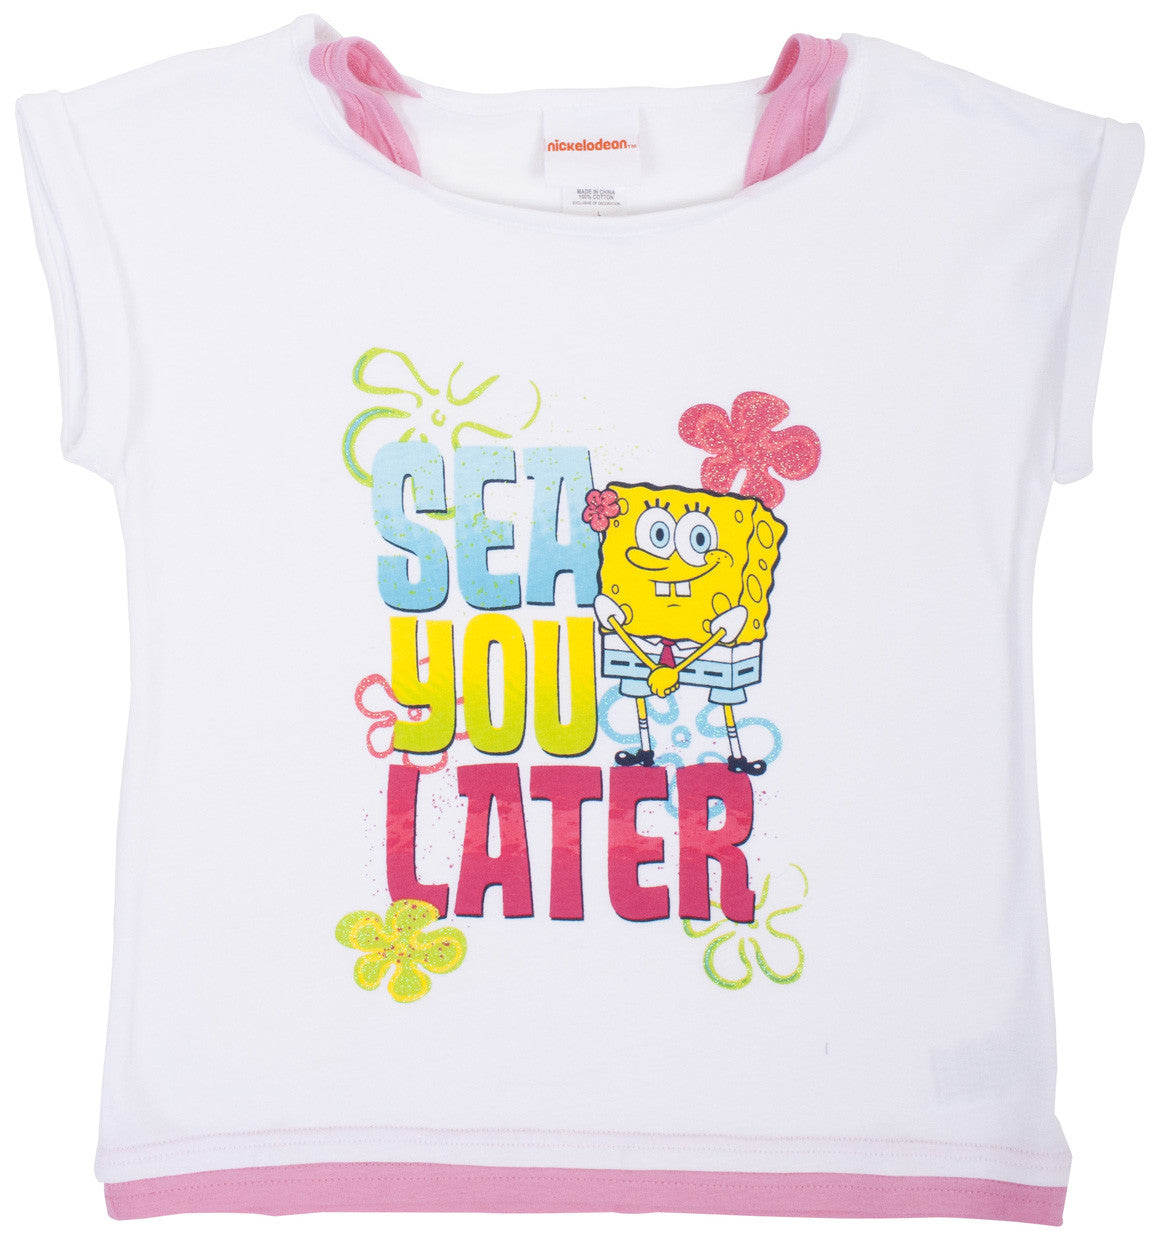 SpongeBob SquarePants Sea Ya T-shirt